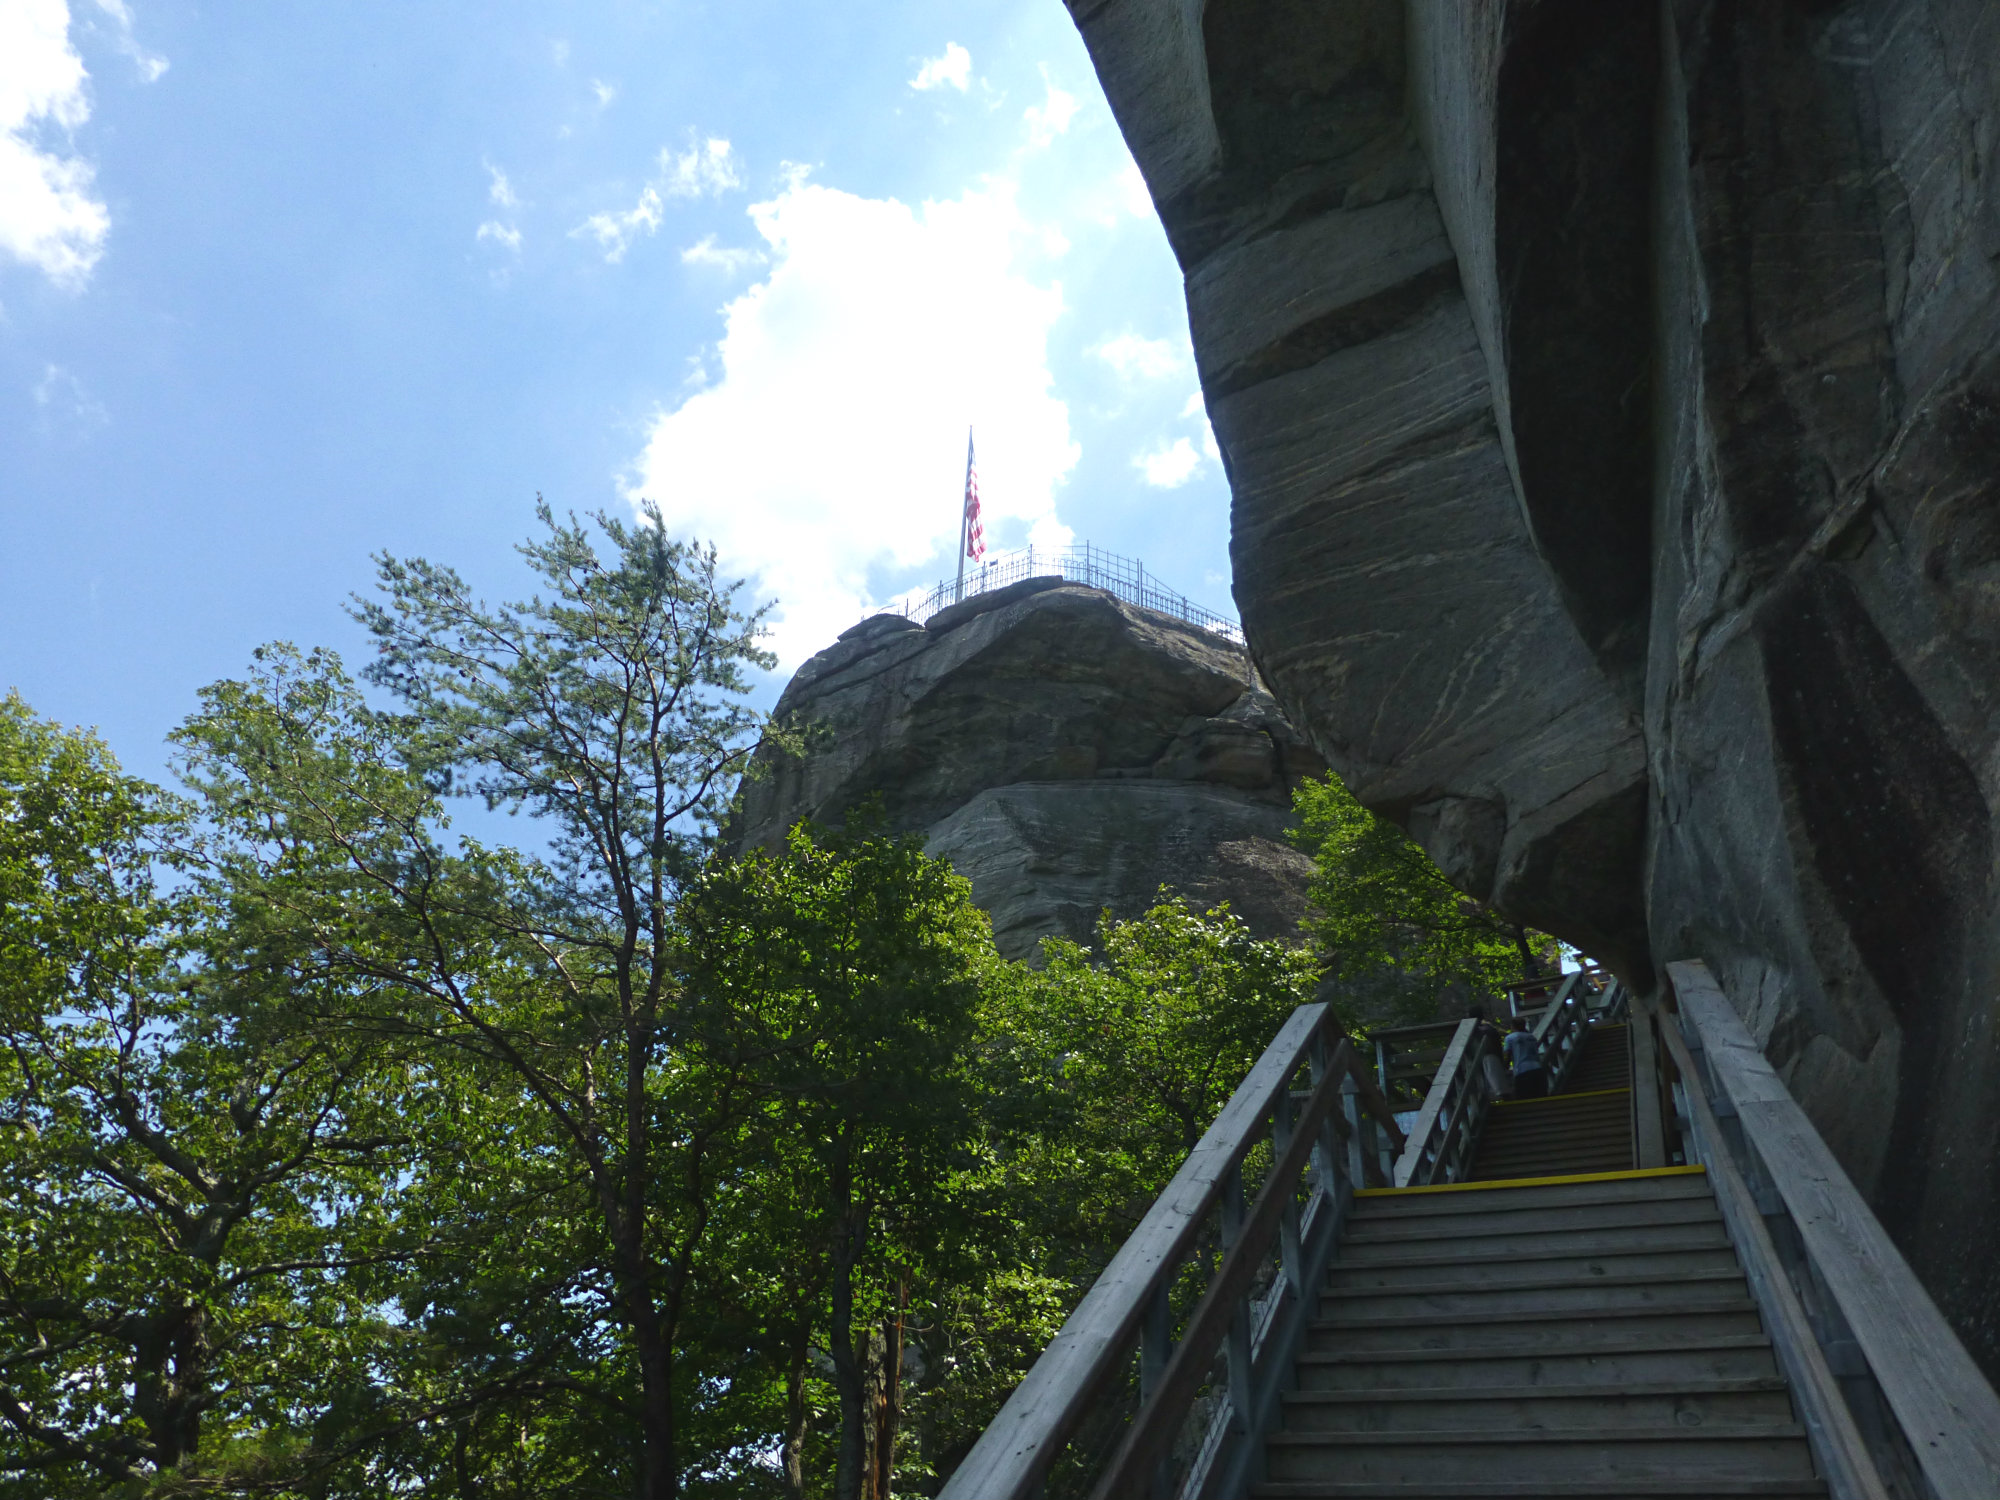 Sturdy wooden stairs leading along a granite boulder to the top of a granite rock with a flag flying on it